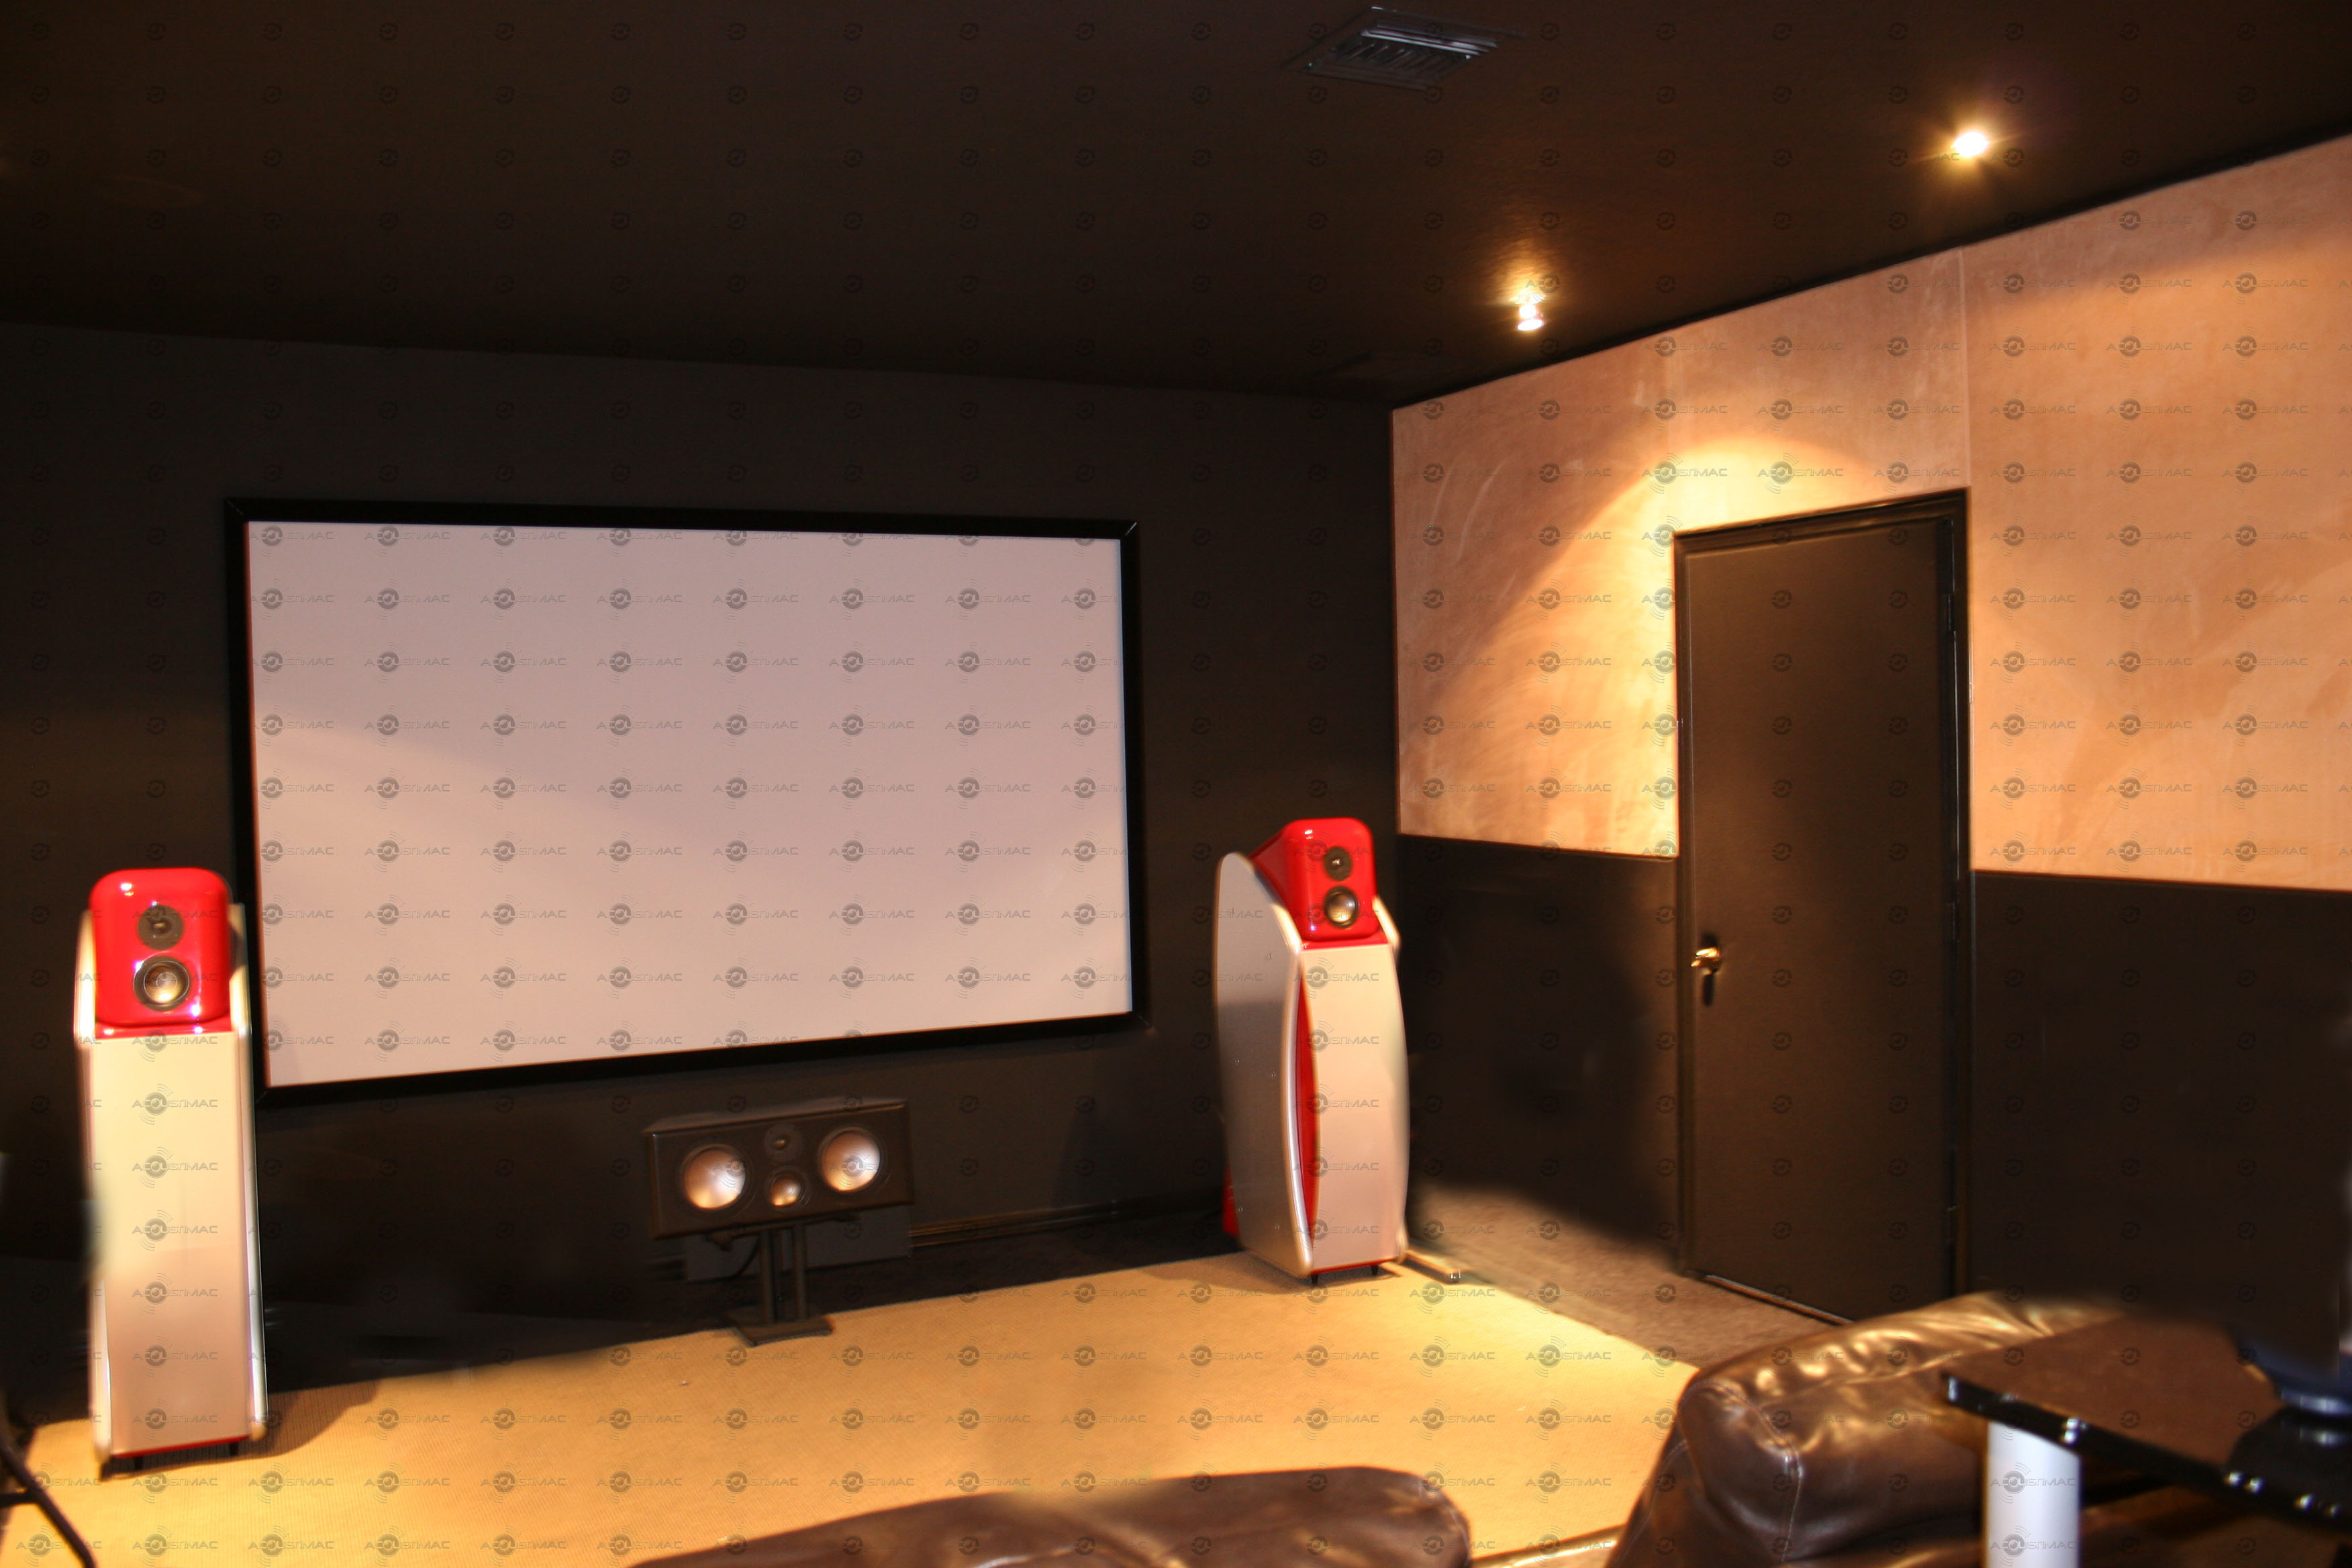 soundproofing an apartment theatre room by acoustic panels on the